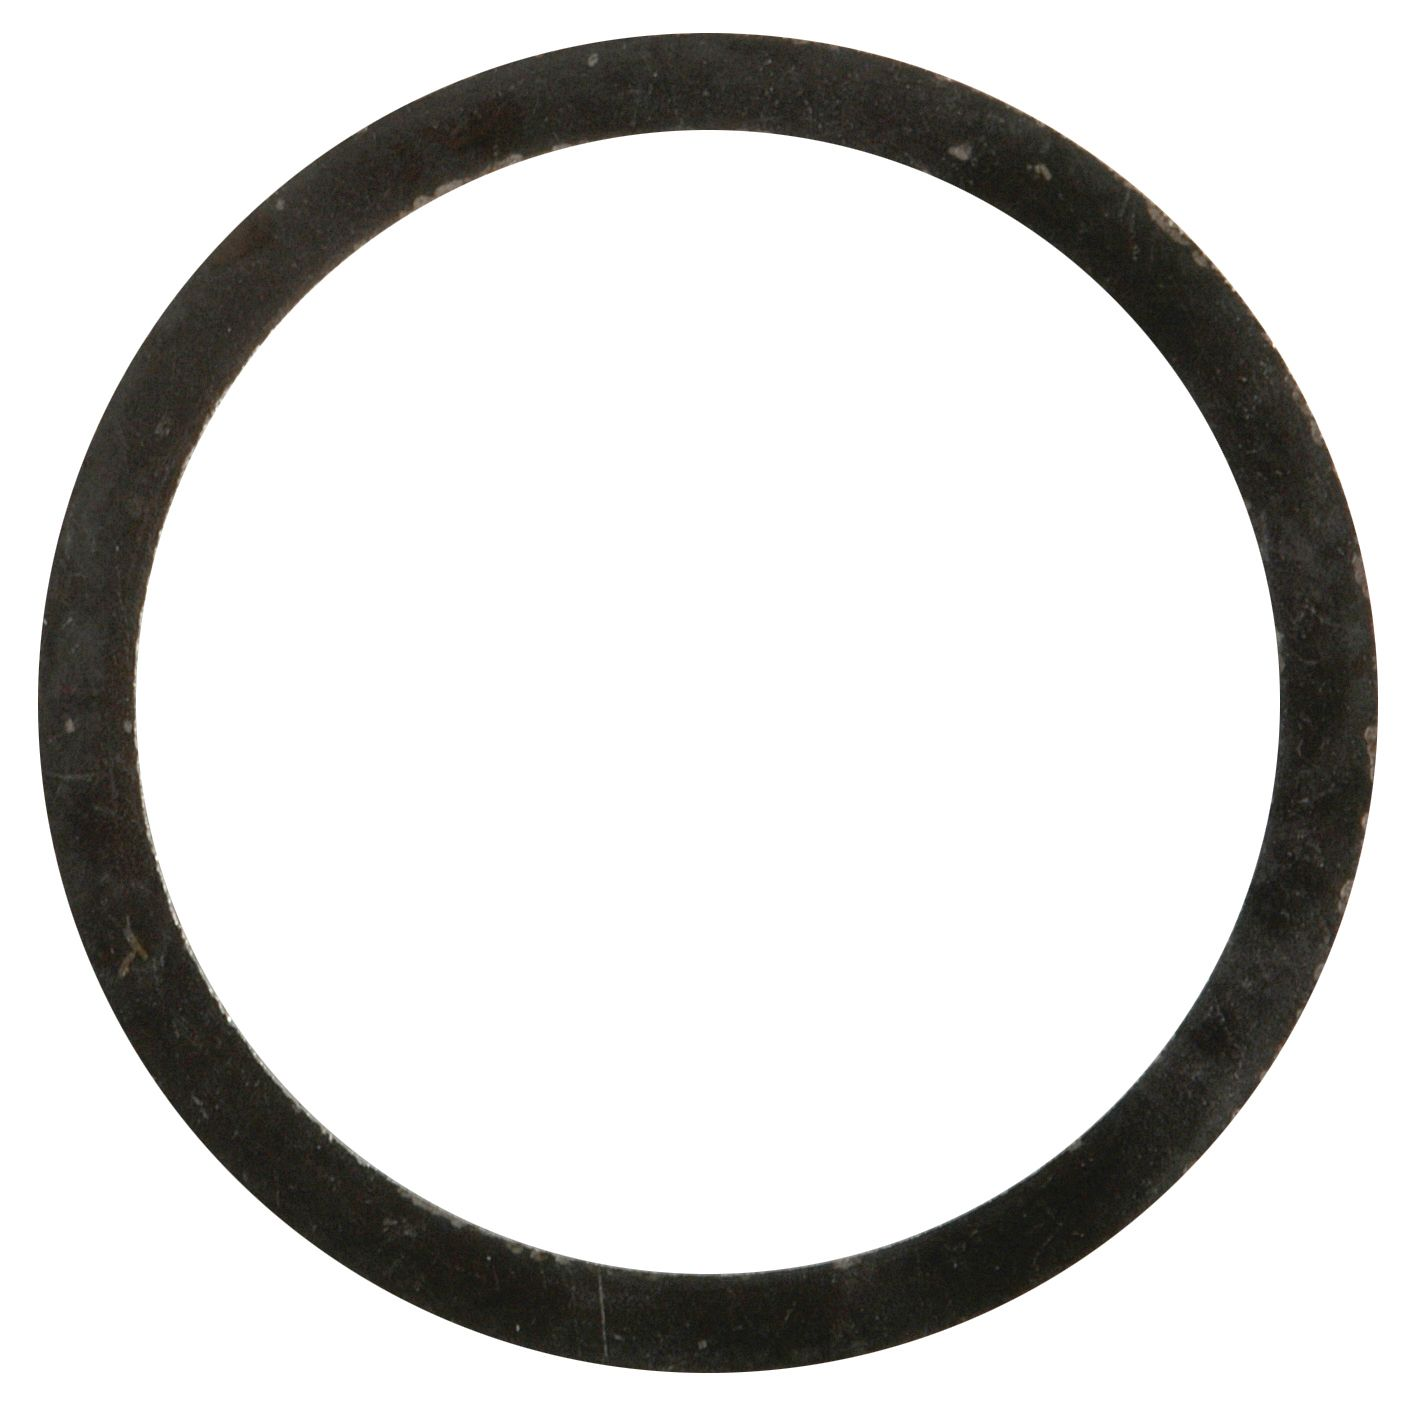 COUNTY THRUST WASHER 66297